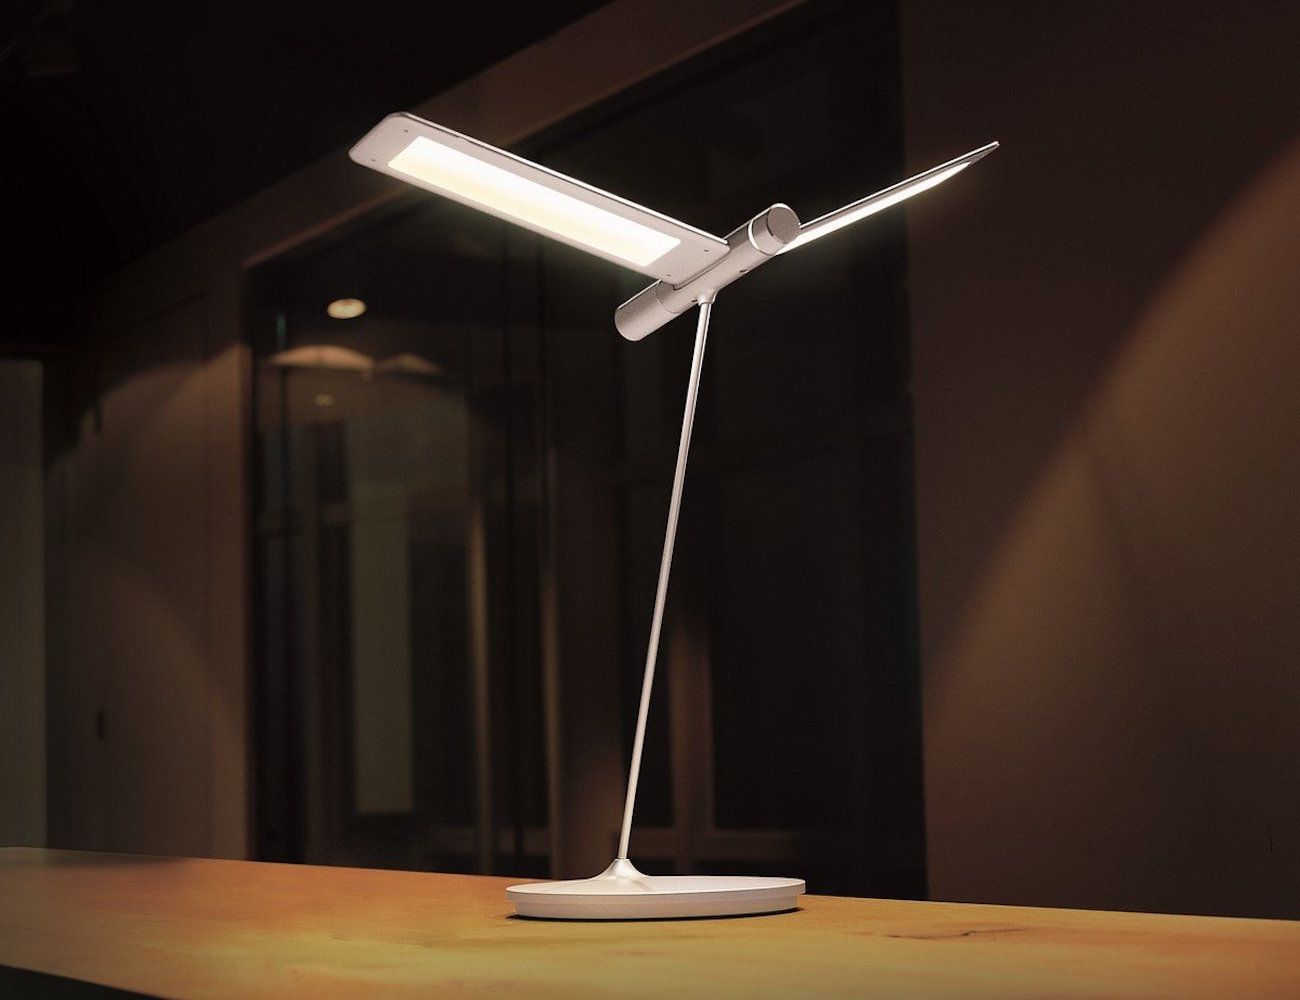 seagull led desk lamp by qisdesign gadget flow. Black Bedroom Furniture Sets. Home Design Ideas